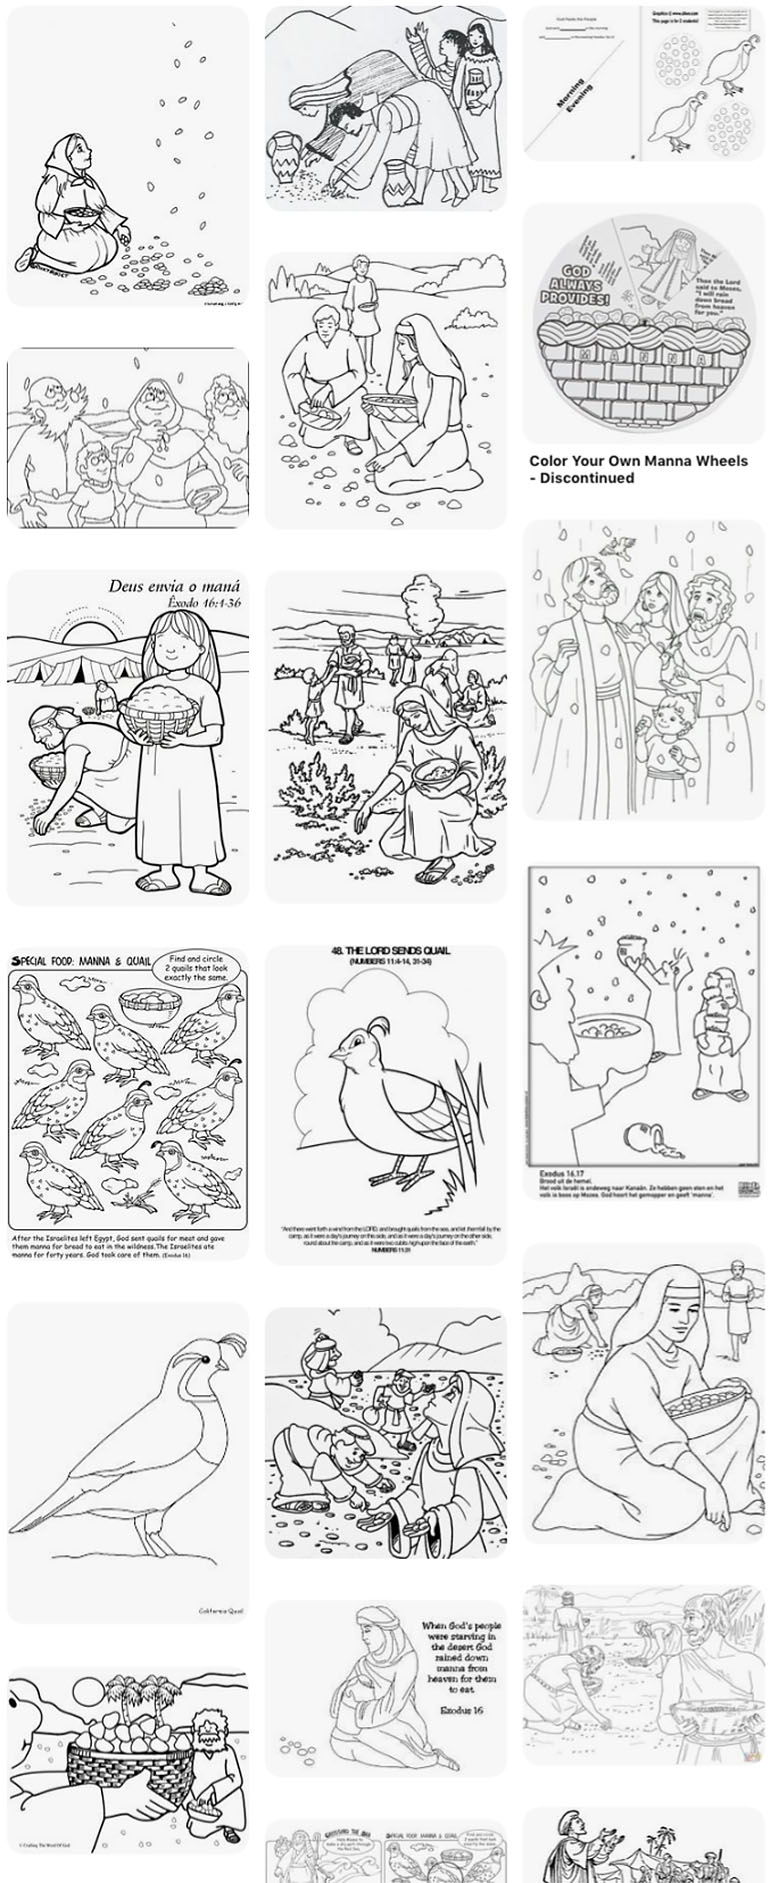 Gathering Manna from Heaven coloring page | Free Printable ... | 1883x770